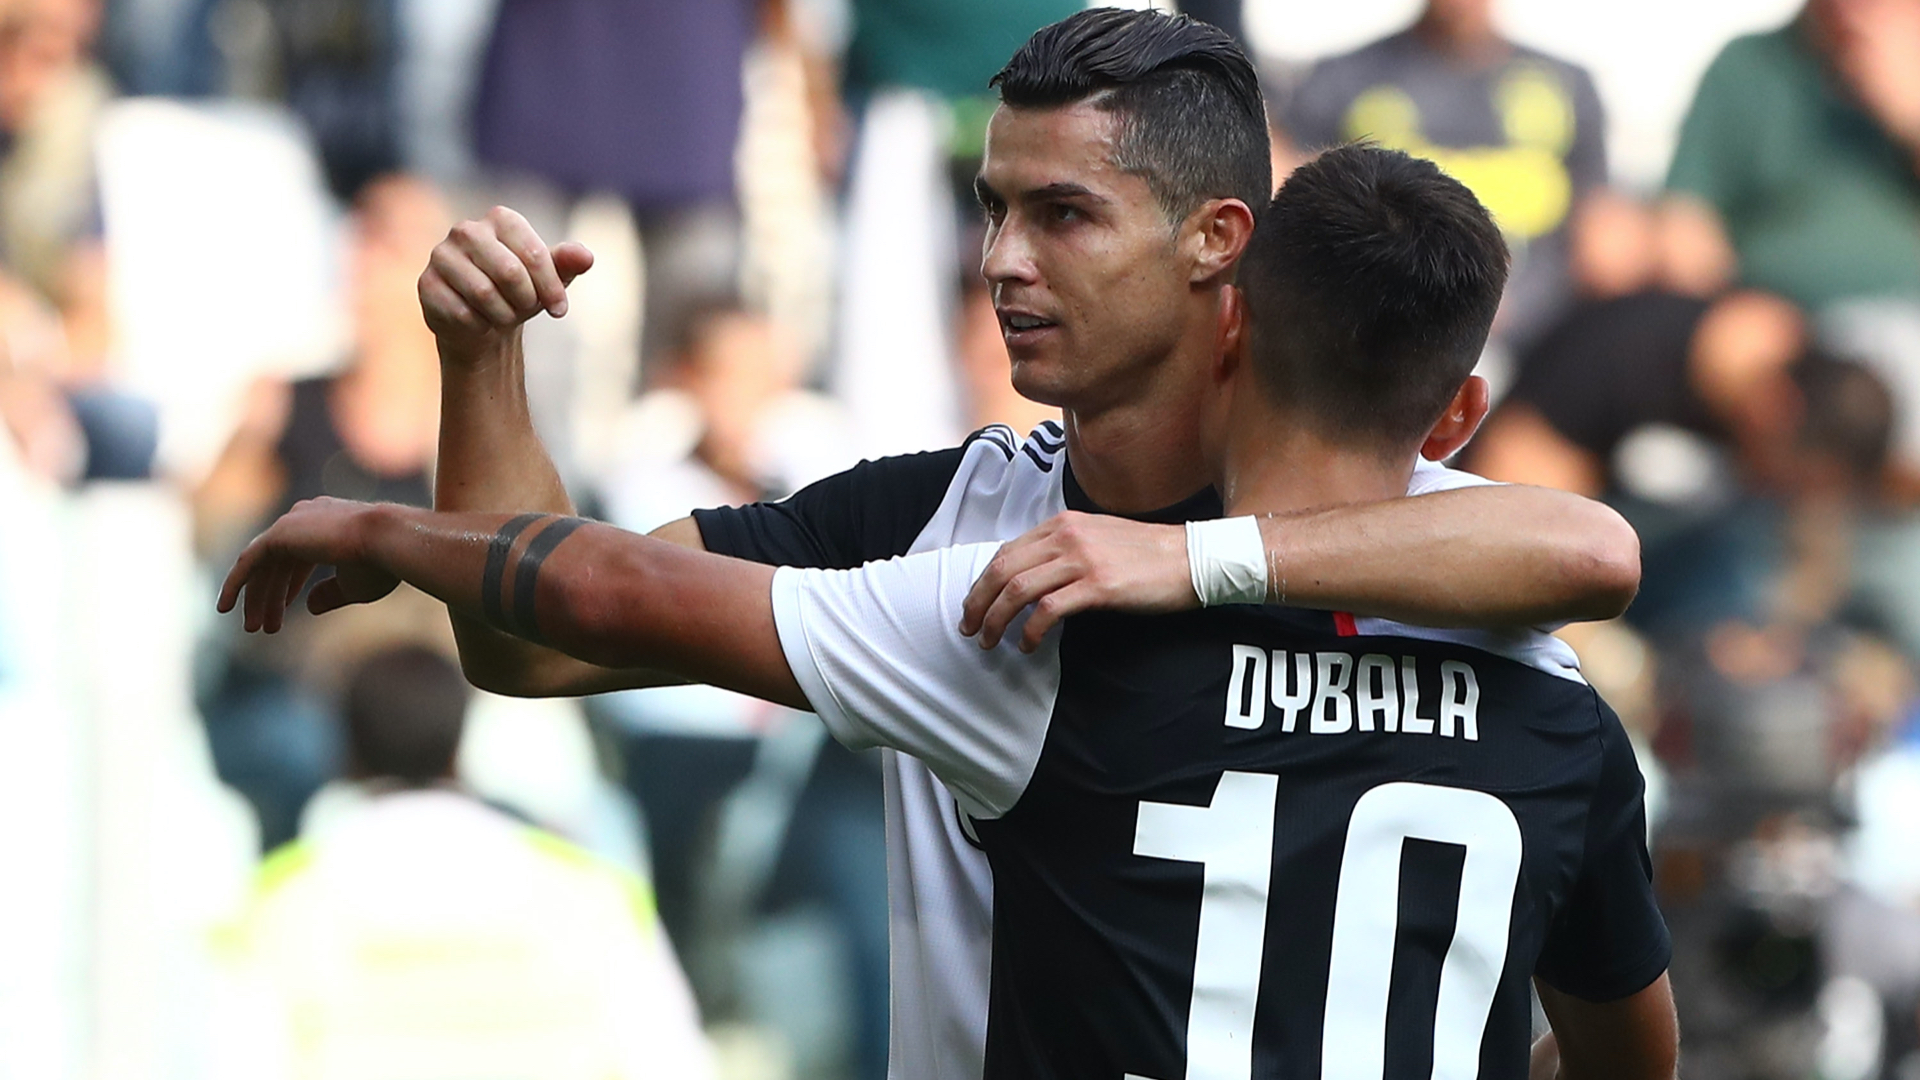 Dybala to Juventus team-mate Ronaldo: We hate you in Argentina!